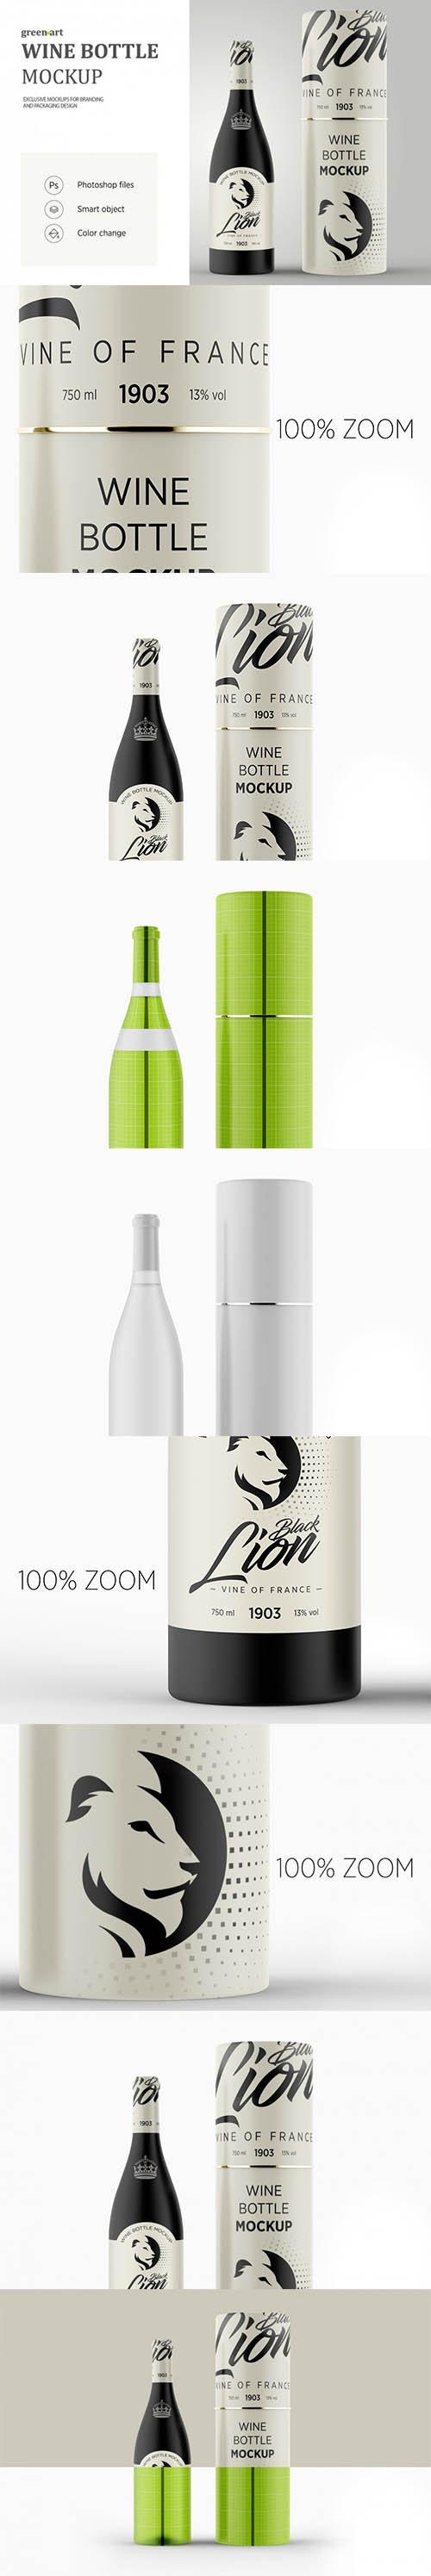 GR - Matte Glass Wine Bottle Mockup 20002554